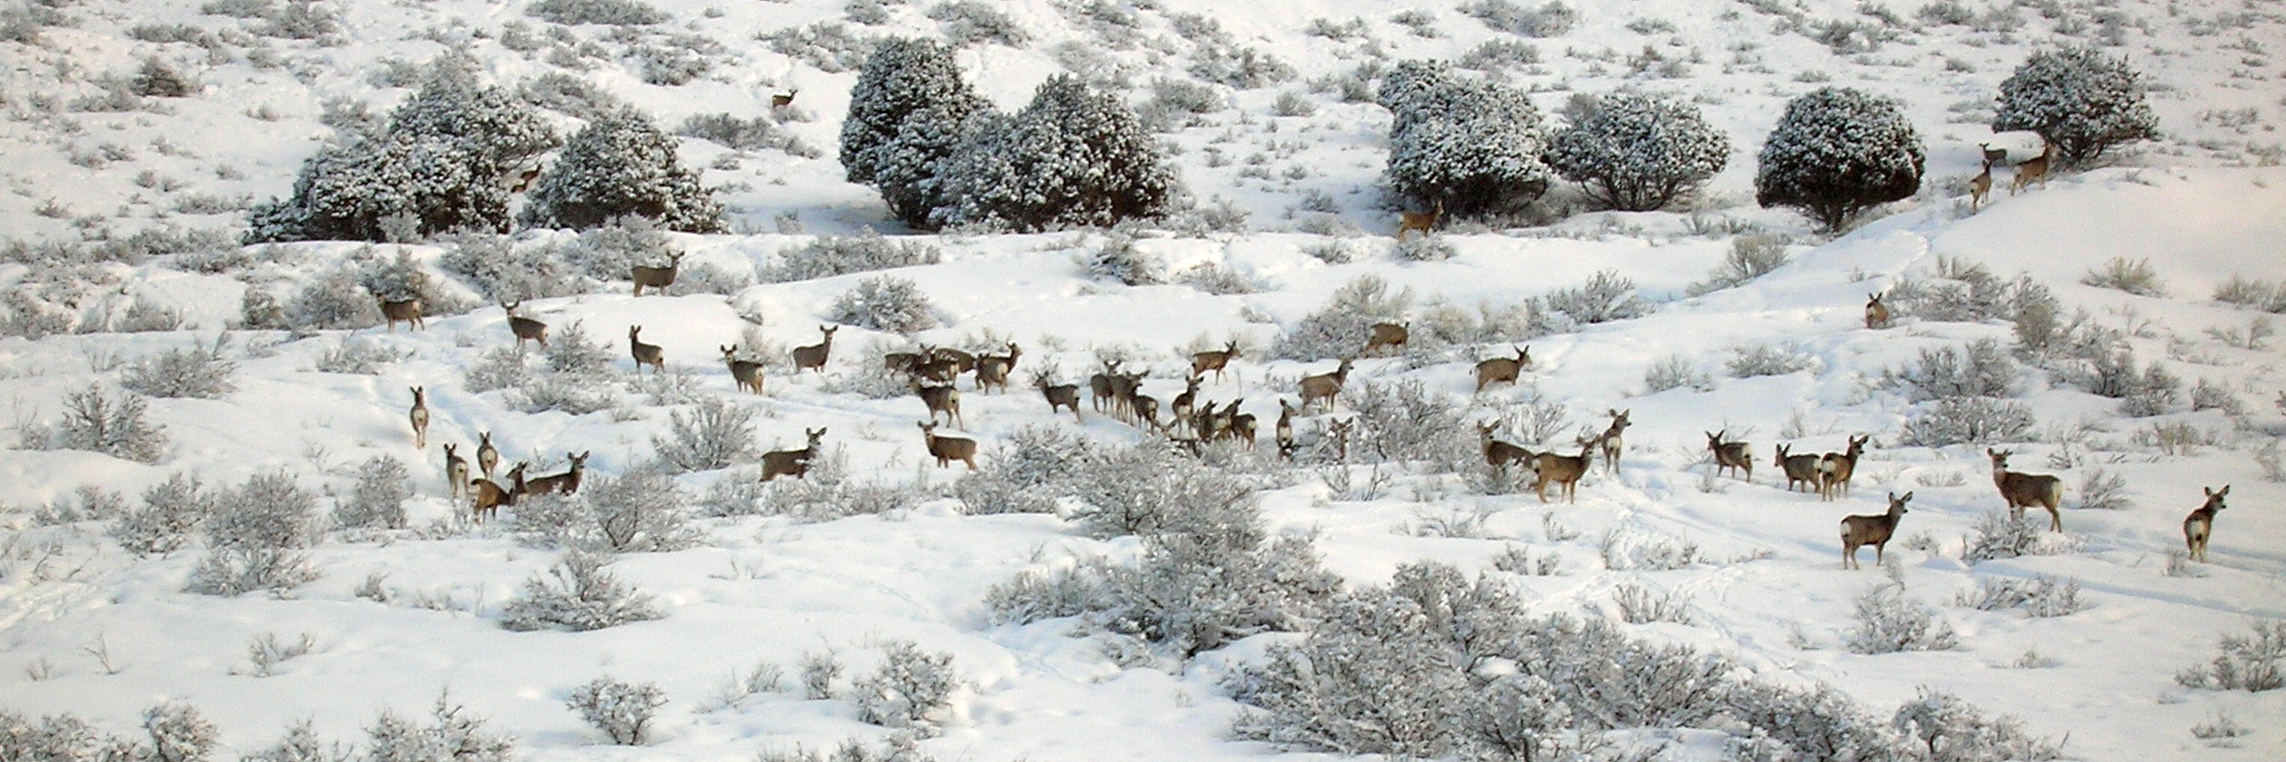 A large of mule deer herd on a snowy hill with trees and sagebrush